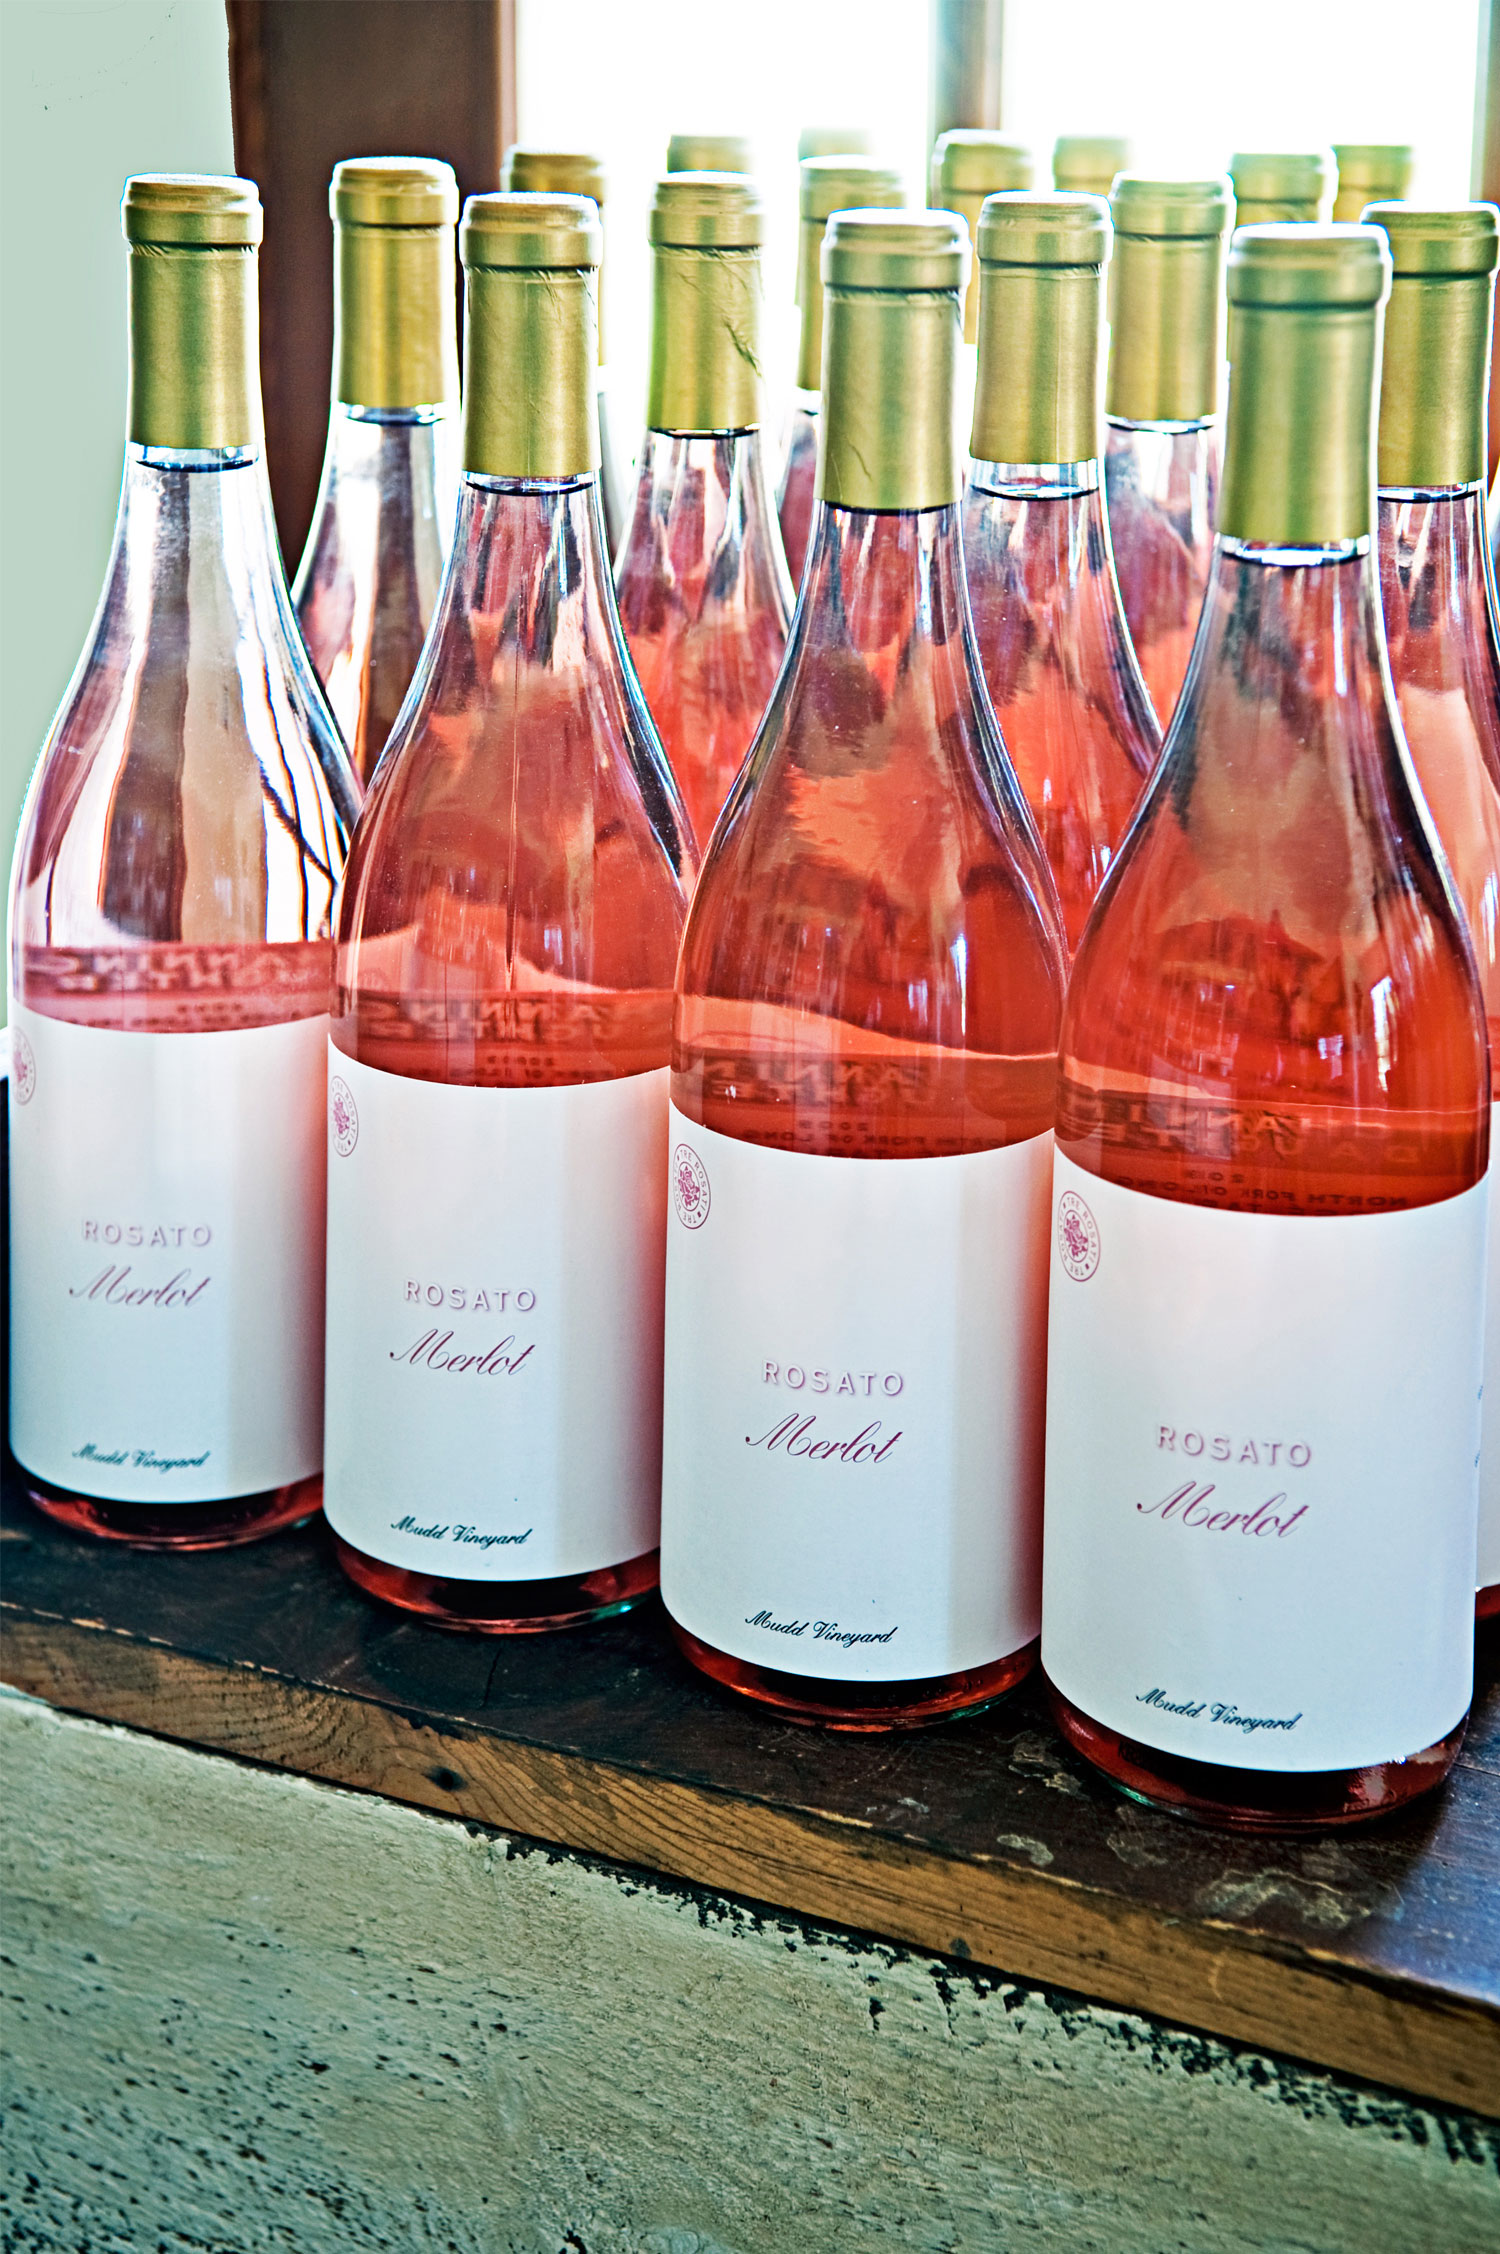 rose wine bottle in store